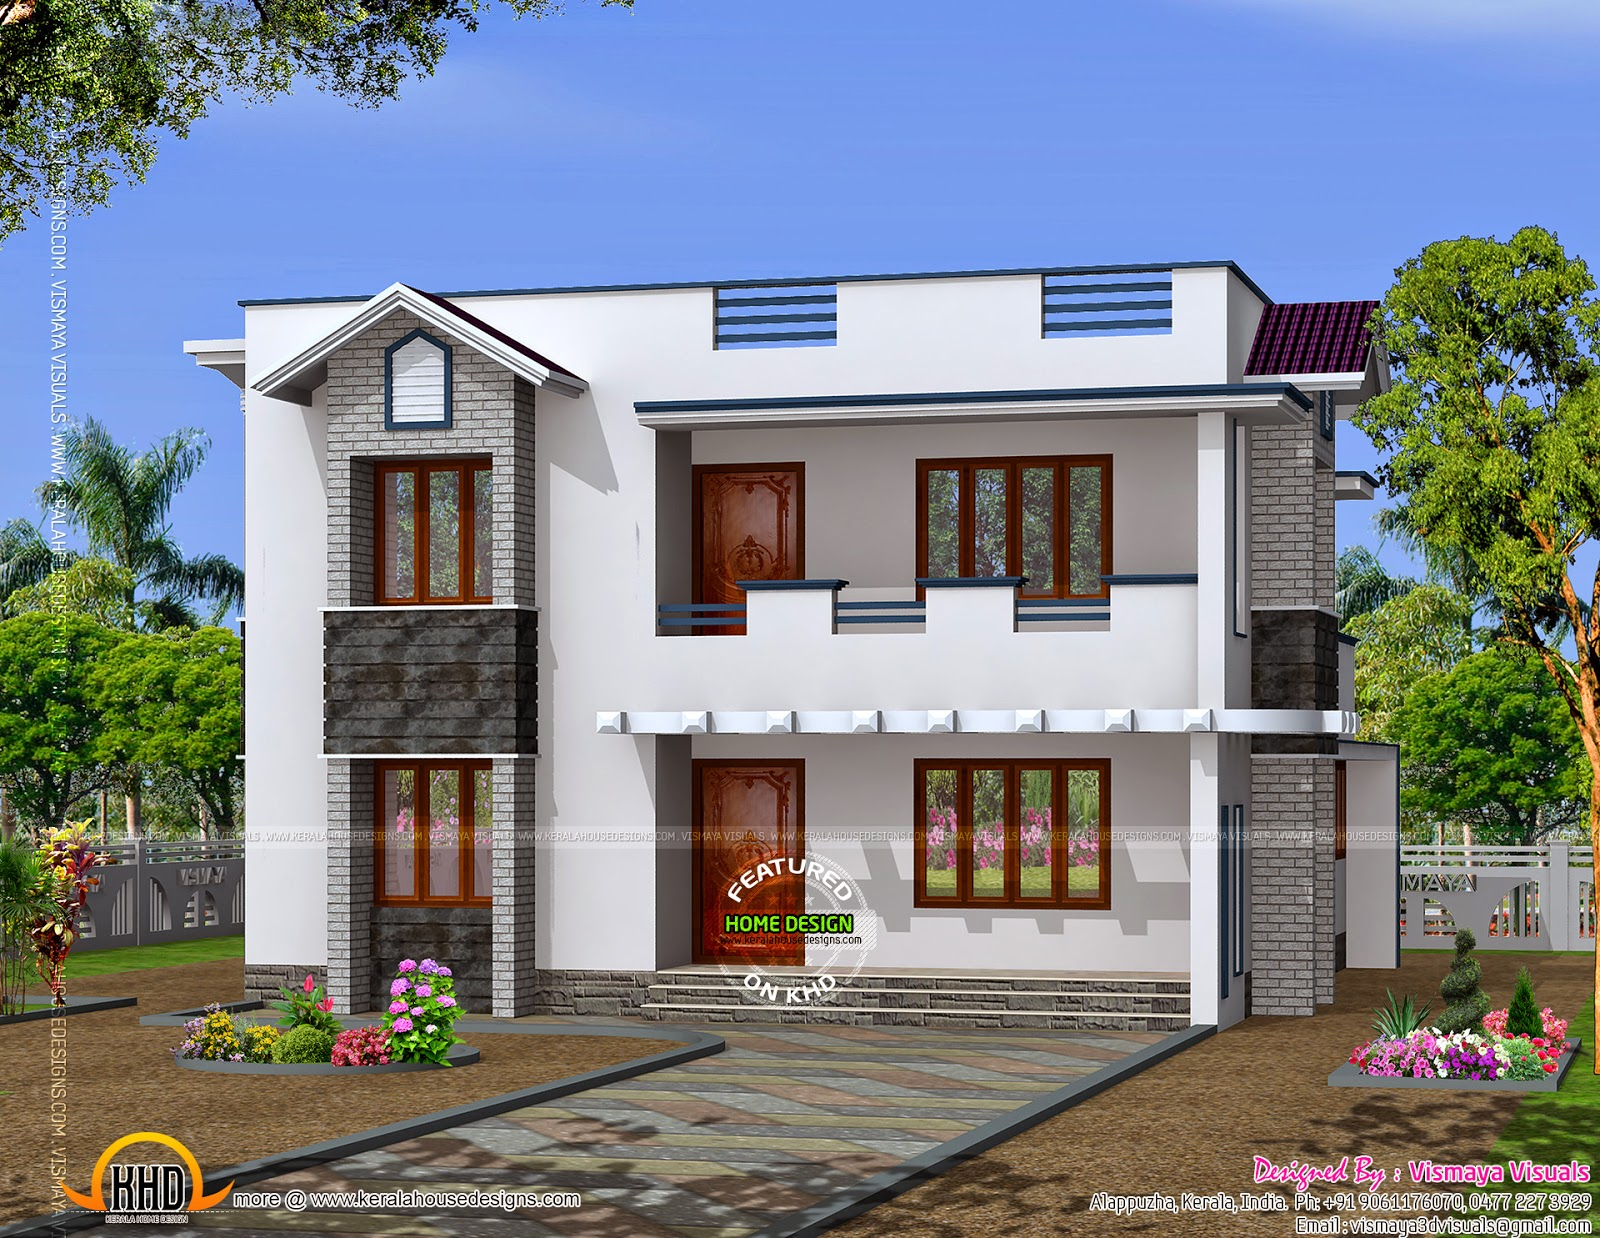 Simple design home kerala home design and floor plans Simple home designs photos